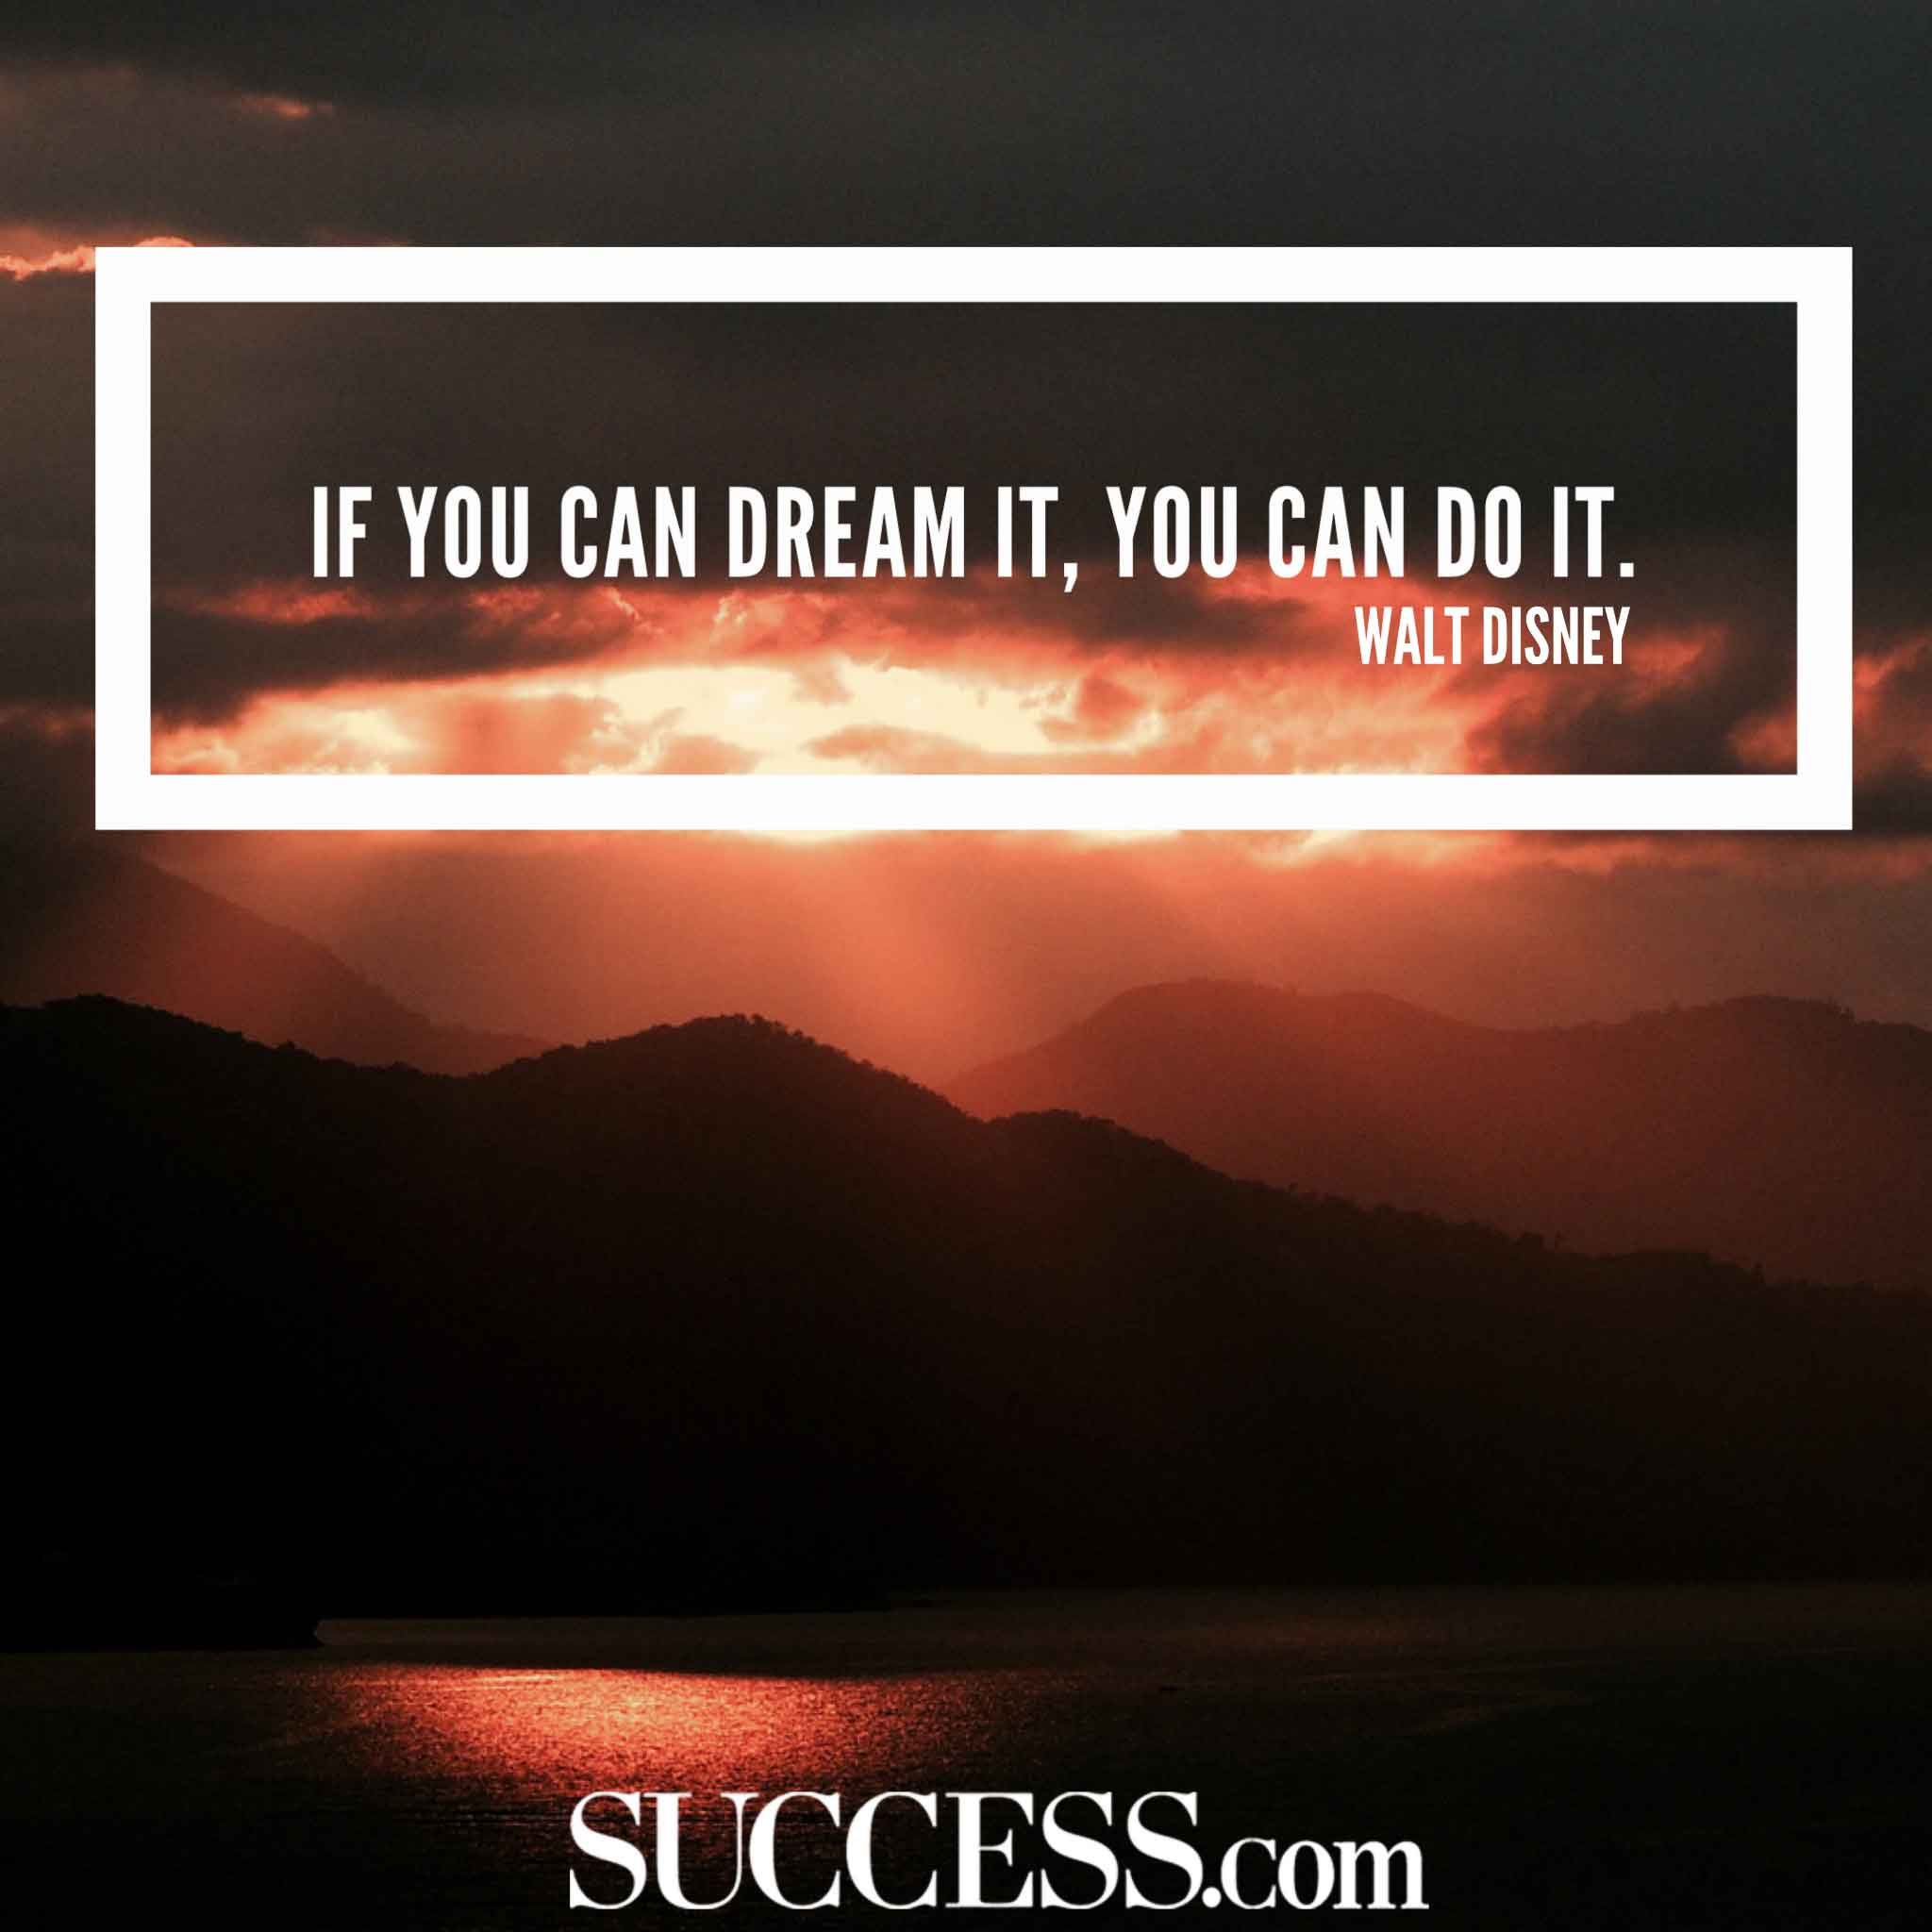 17 Motivational Quotes to Help You Achieve Your Dreams   SUCCESS